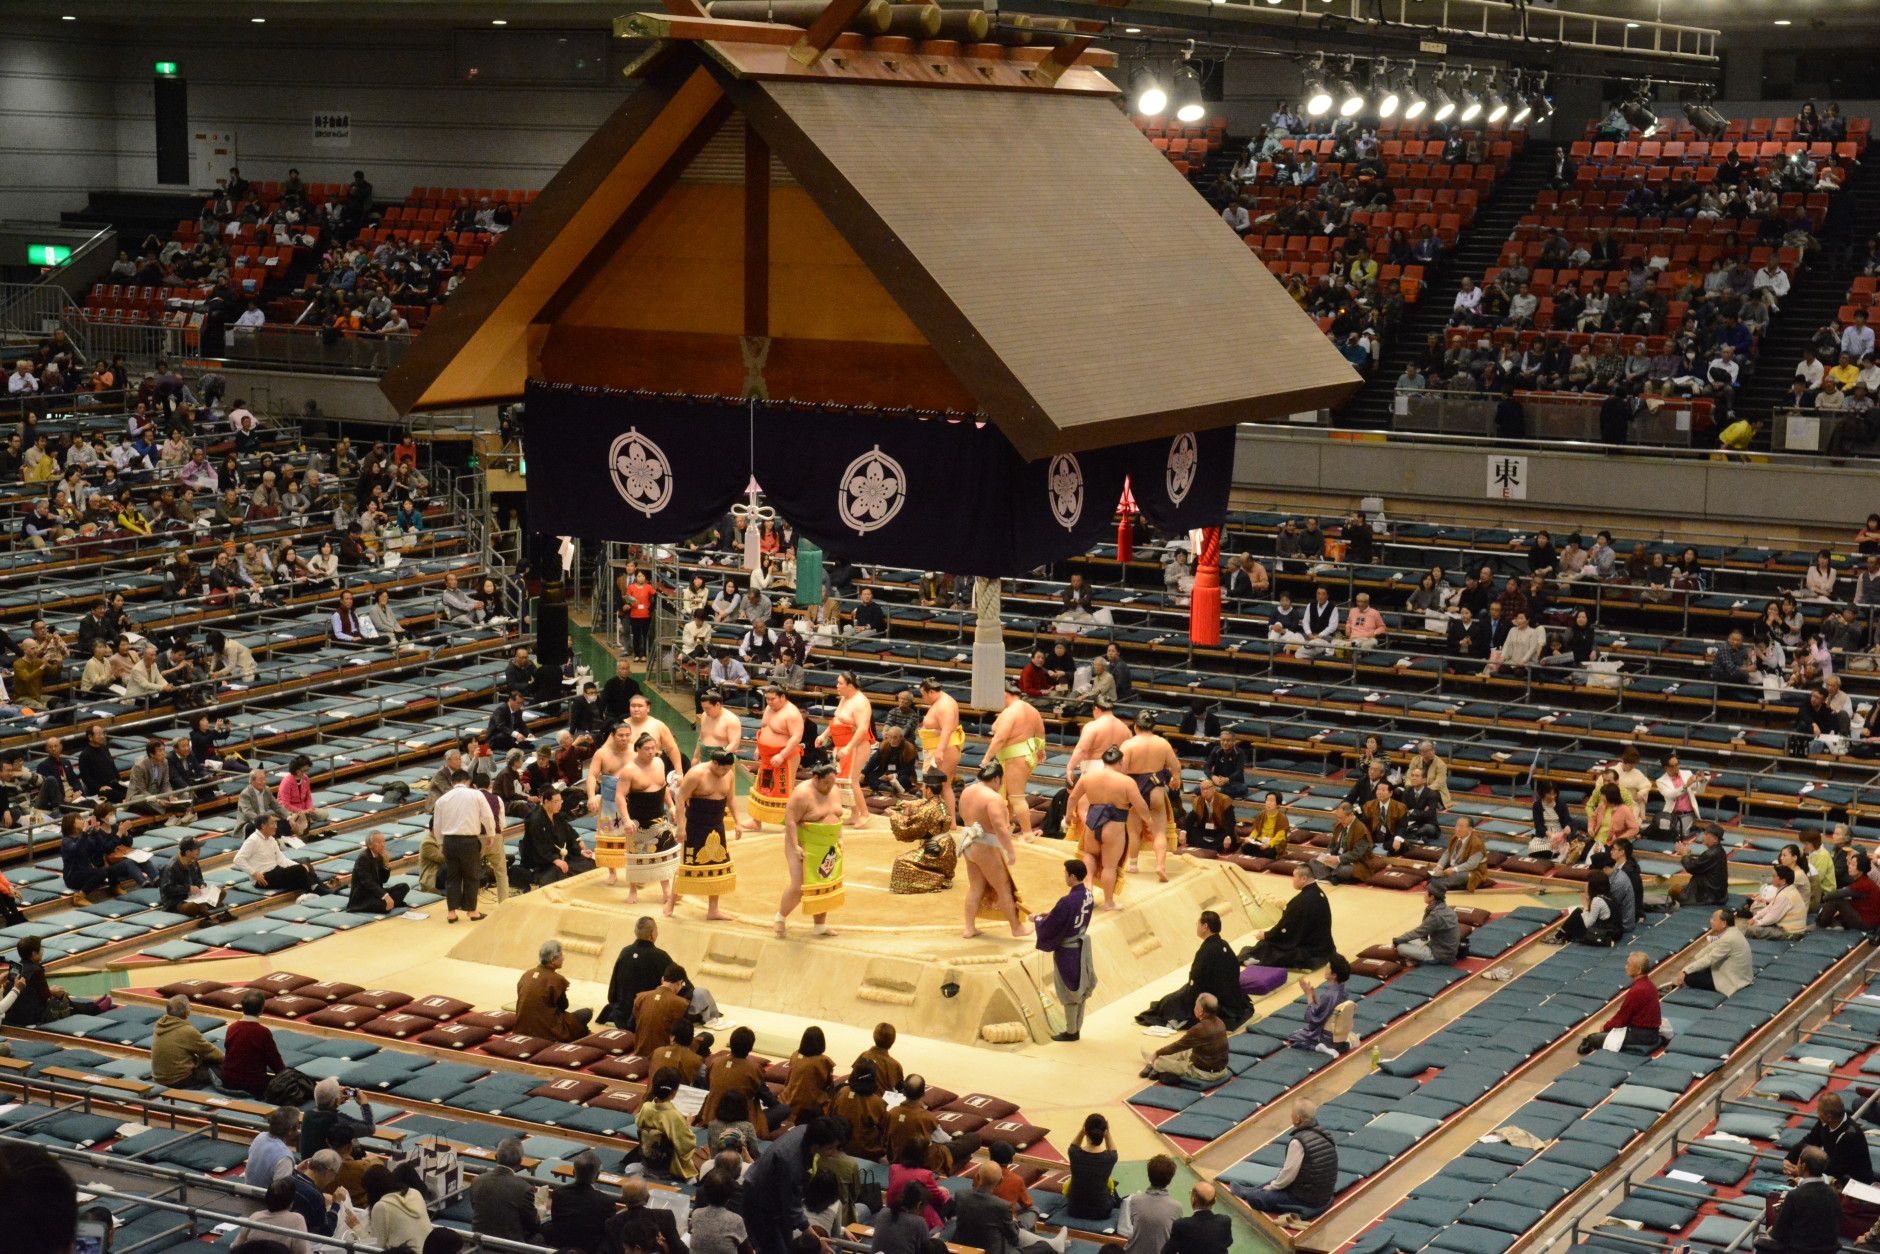 """""""Sumo combines so much of Japanese culture into just one sporting event. There's this ritual and these traditions, and these dances, and it's just really kind of a trip back in time. Just the energy of the crowd is so intense, you feel like you're really part of something,"""" says Laura Hayes.  (Courtesy Laura Hayes)"""